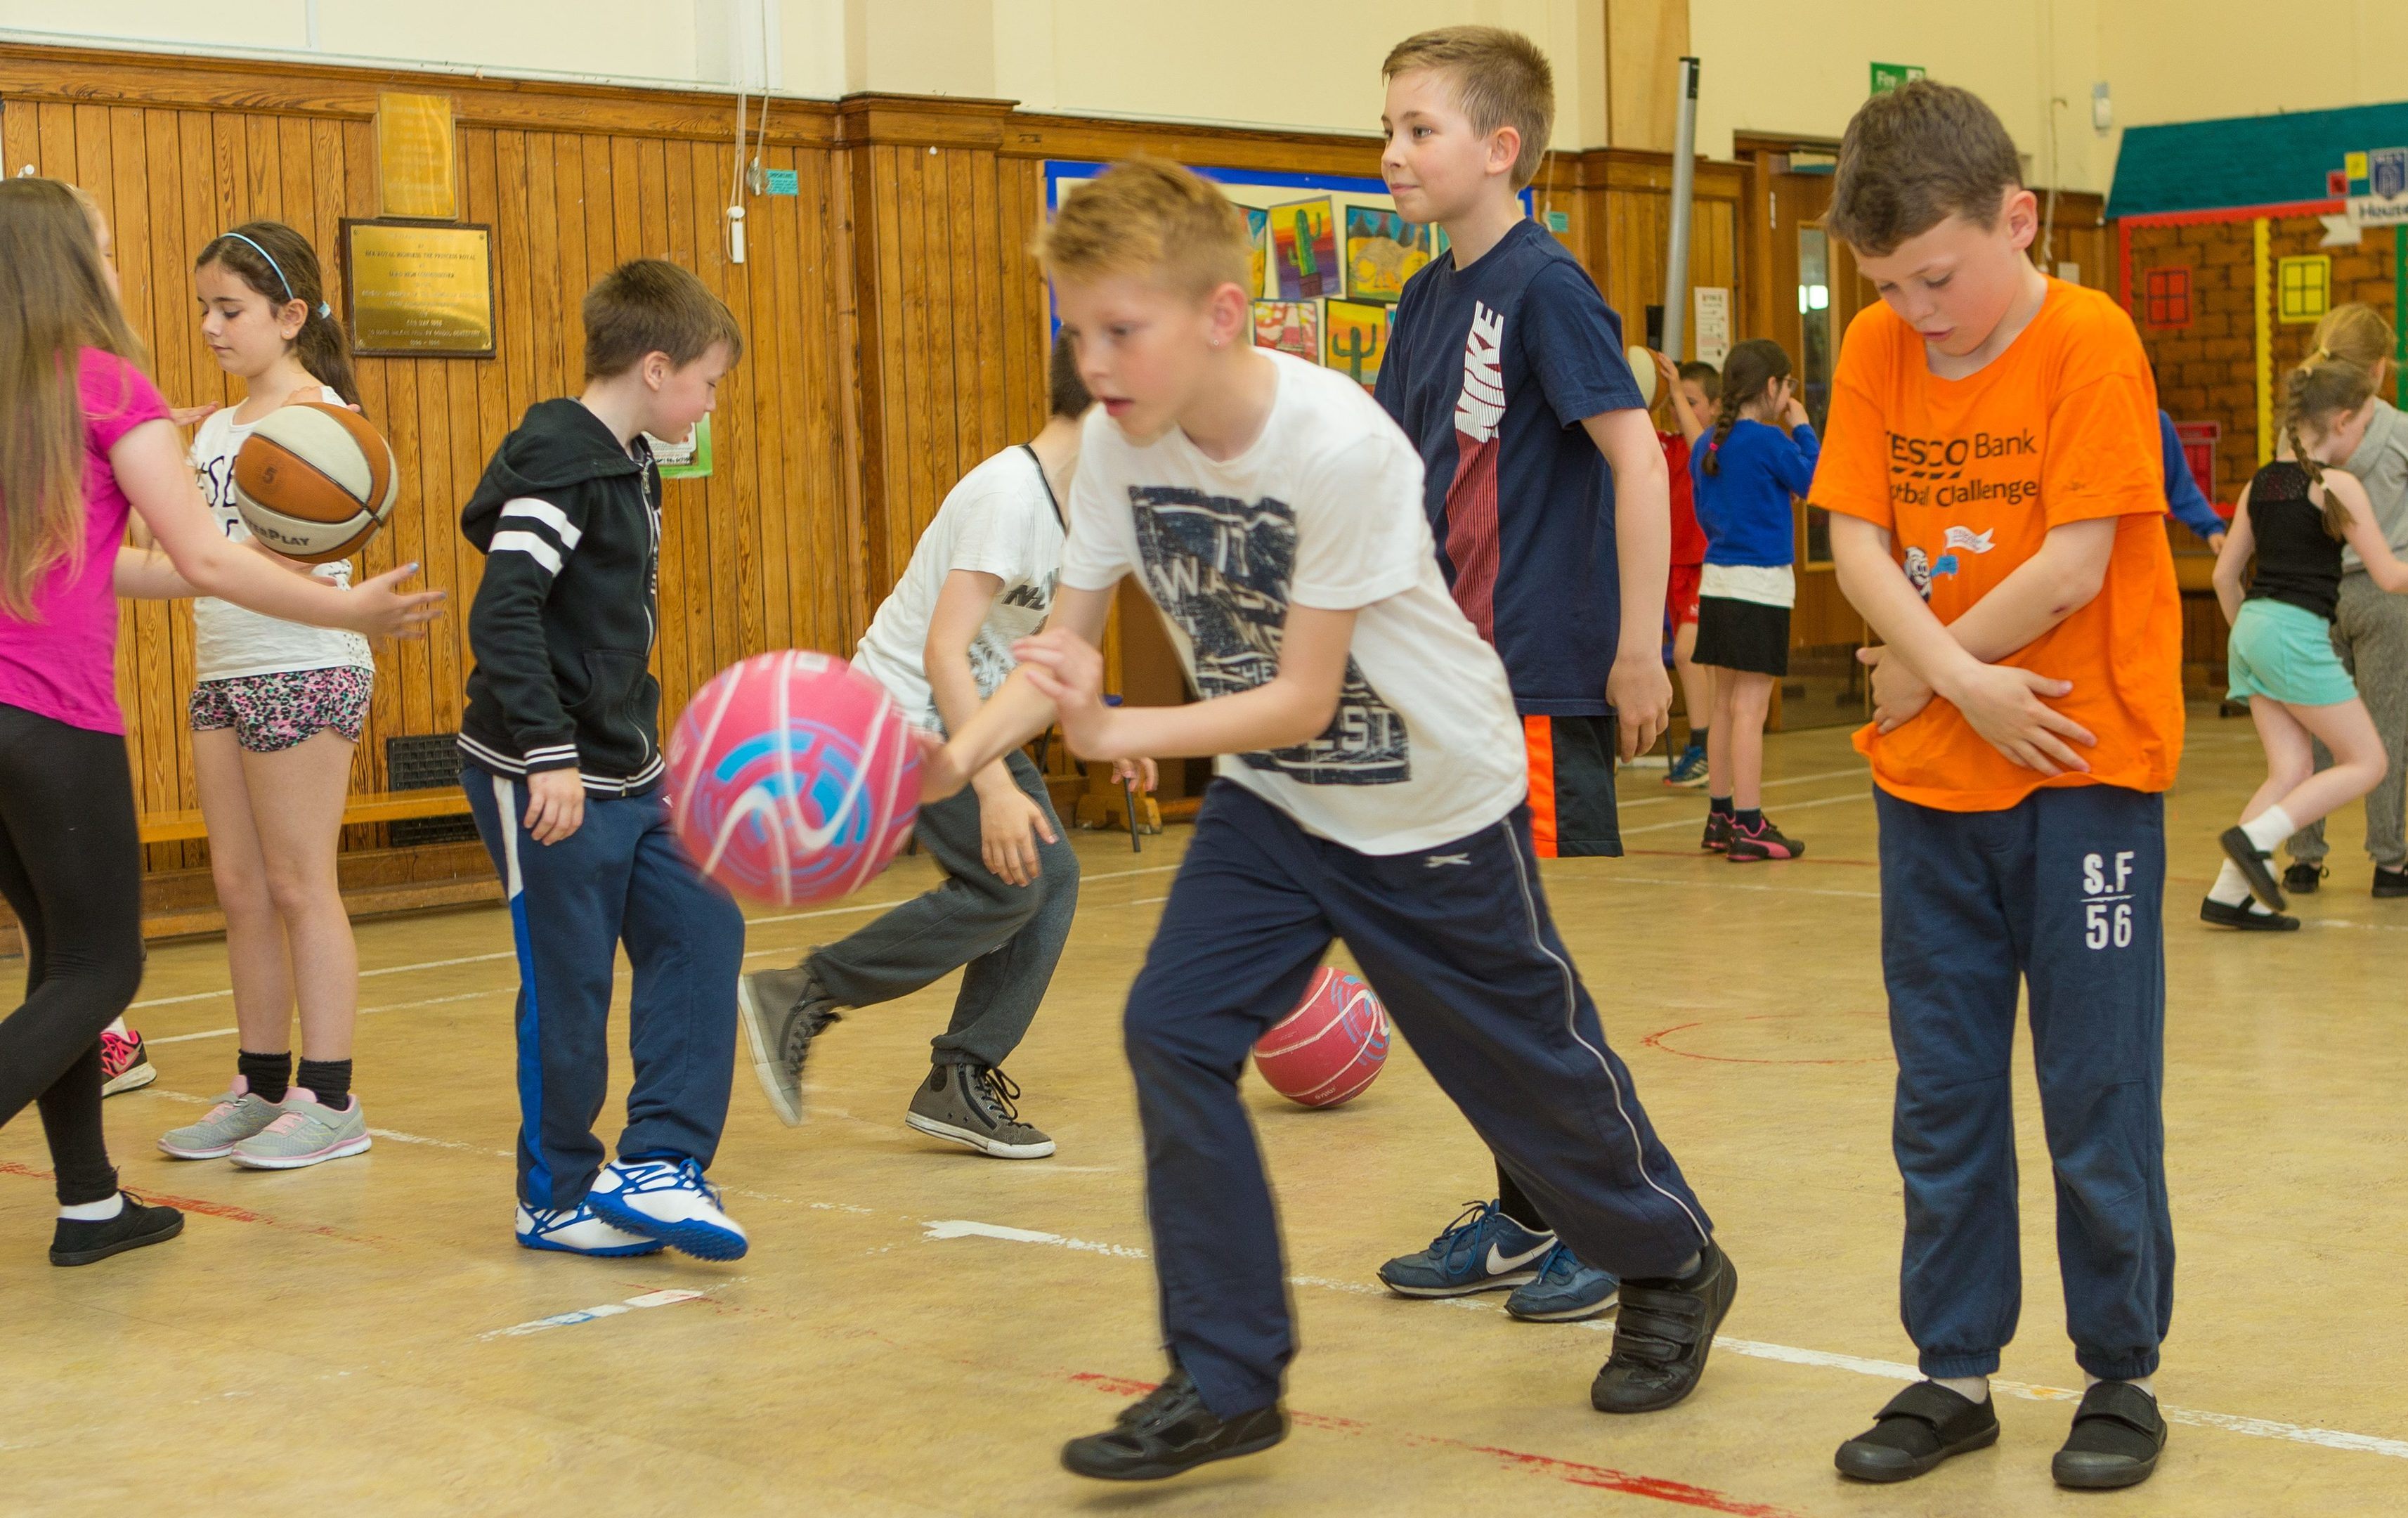 Kids from McLean Primary School in Dunfermline take part in the Active School 1 Mile A Day project to aid Better Movement and Thinkers as part of their PE Lesson to develop physical literacy for improved classroom attainment.